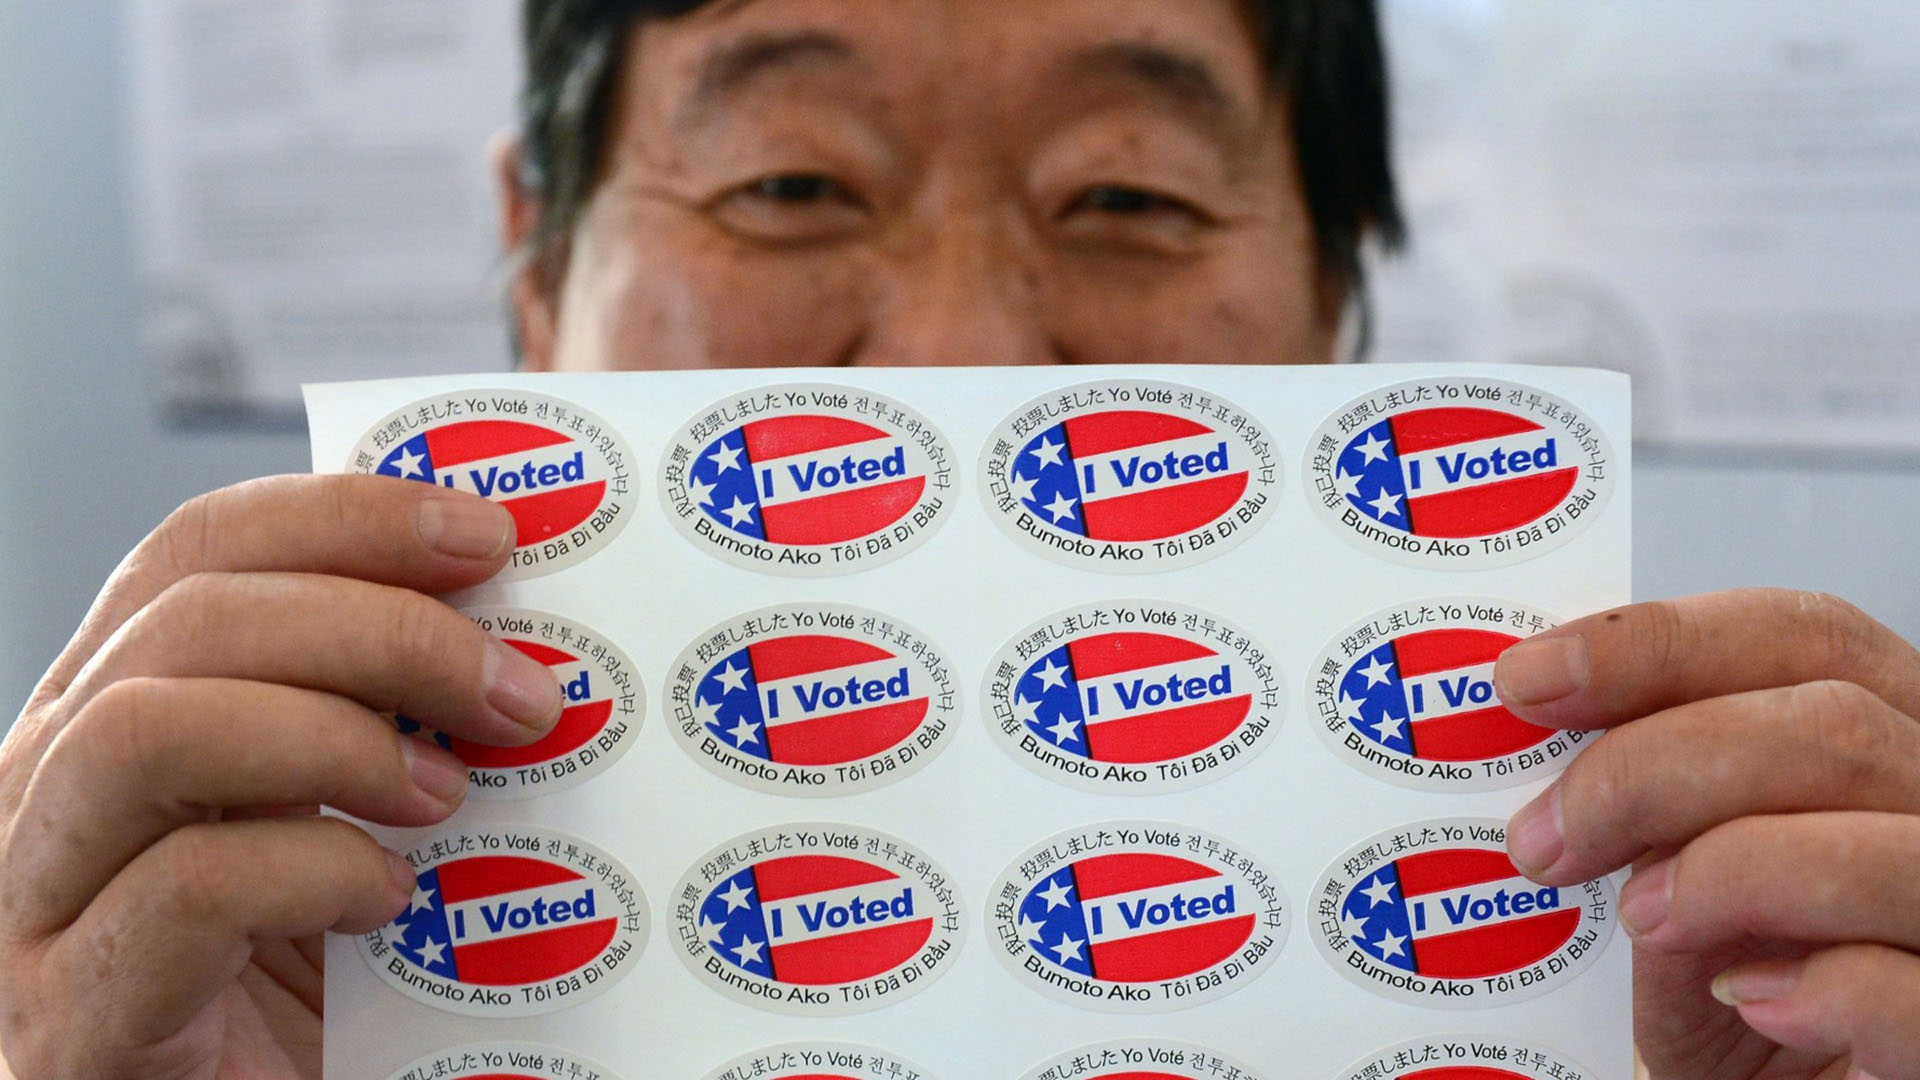 How do we make make sure voter information is not lost in translation for Asian Americans and Pacific Islanders?